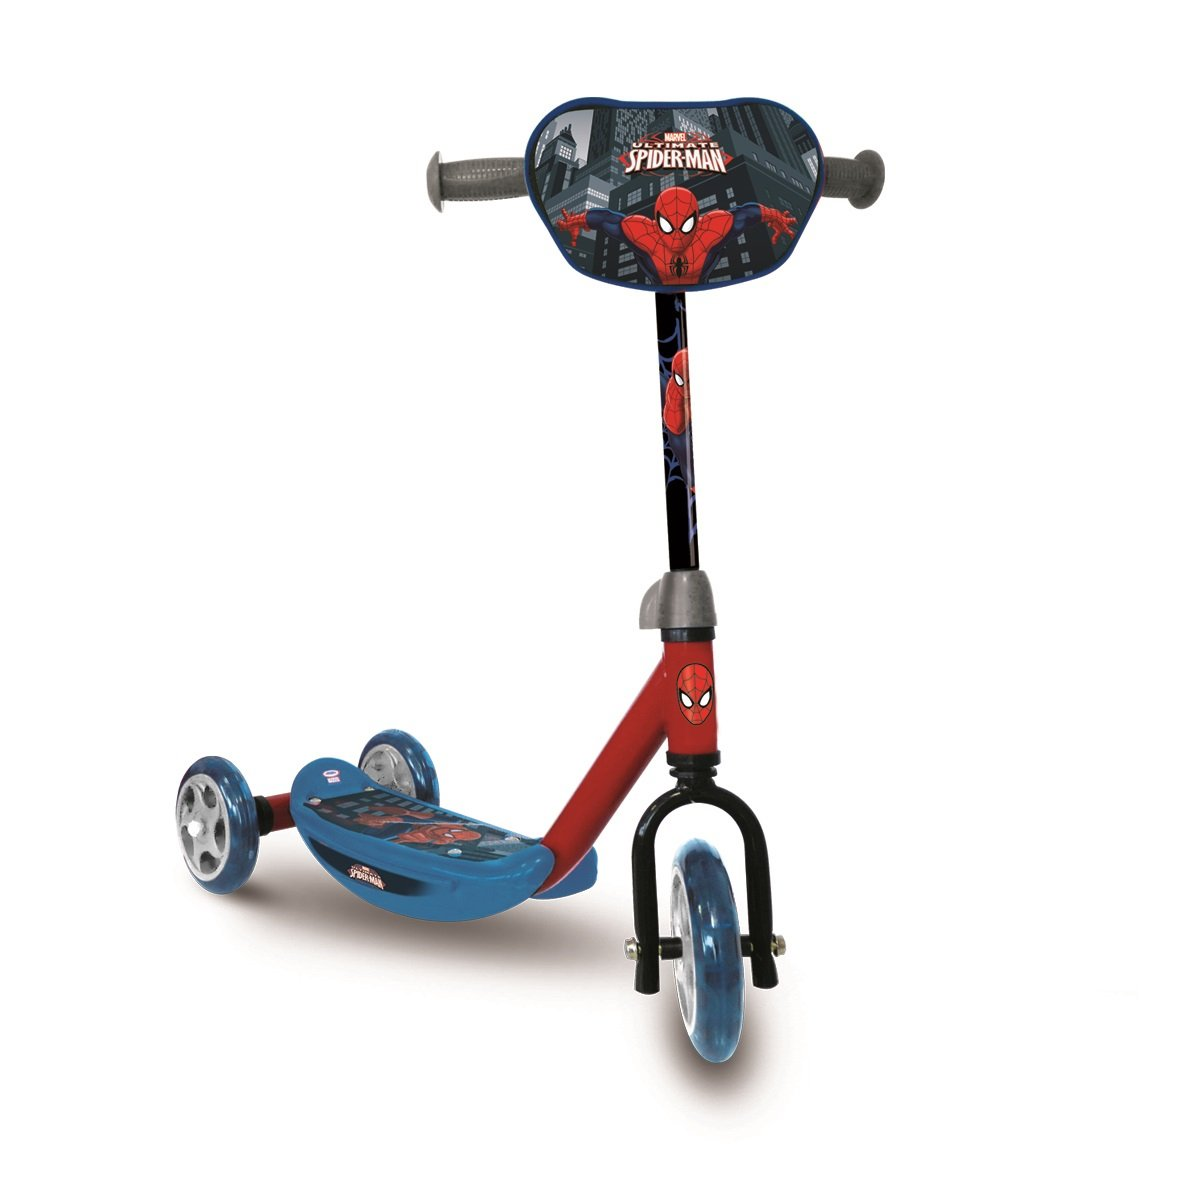 Spider Man 3 Wheels Scooter ToyCentre OSPI110